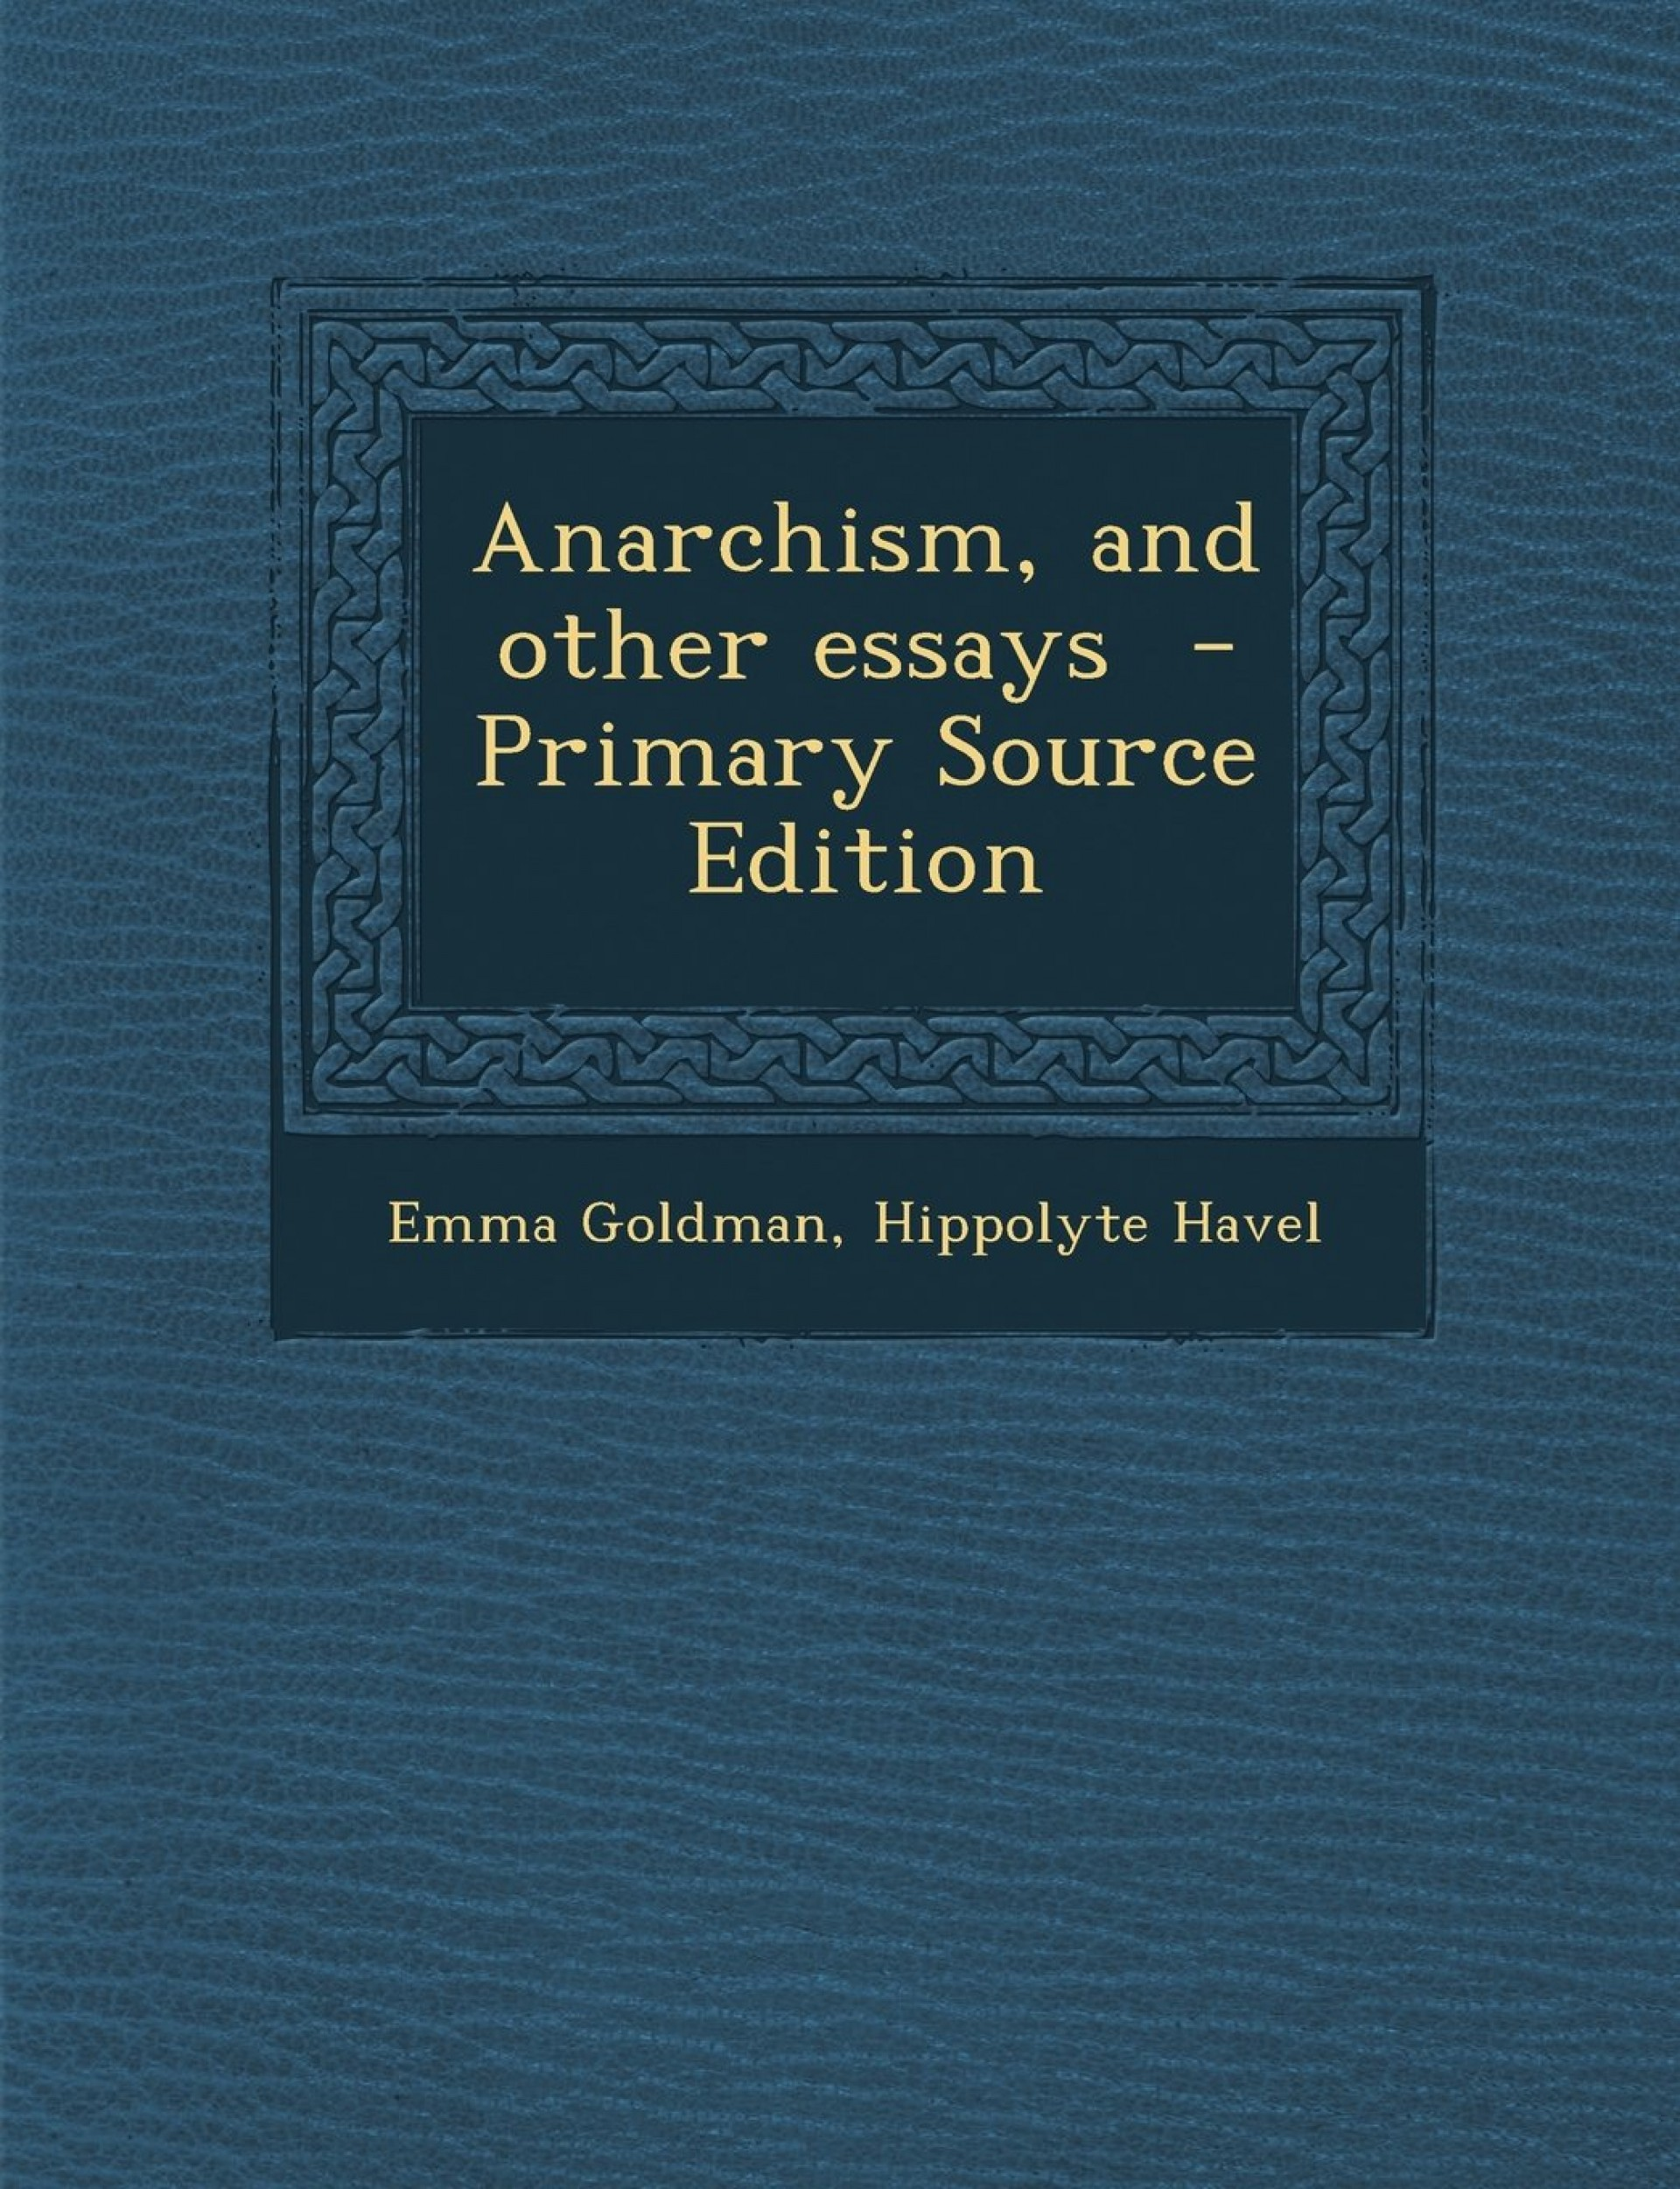 011 Essay Example 81cxvi Vkbl Anarchism And Other Incredible Essays Emma Goldman Summary Mla Citation 1920